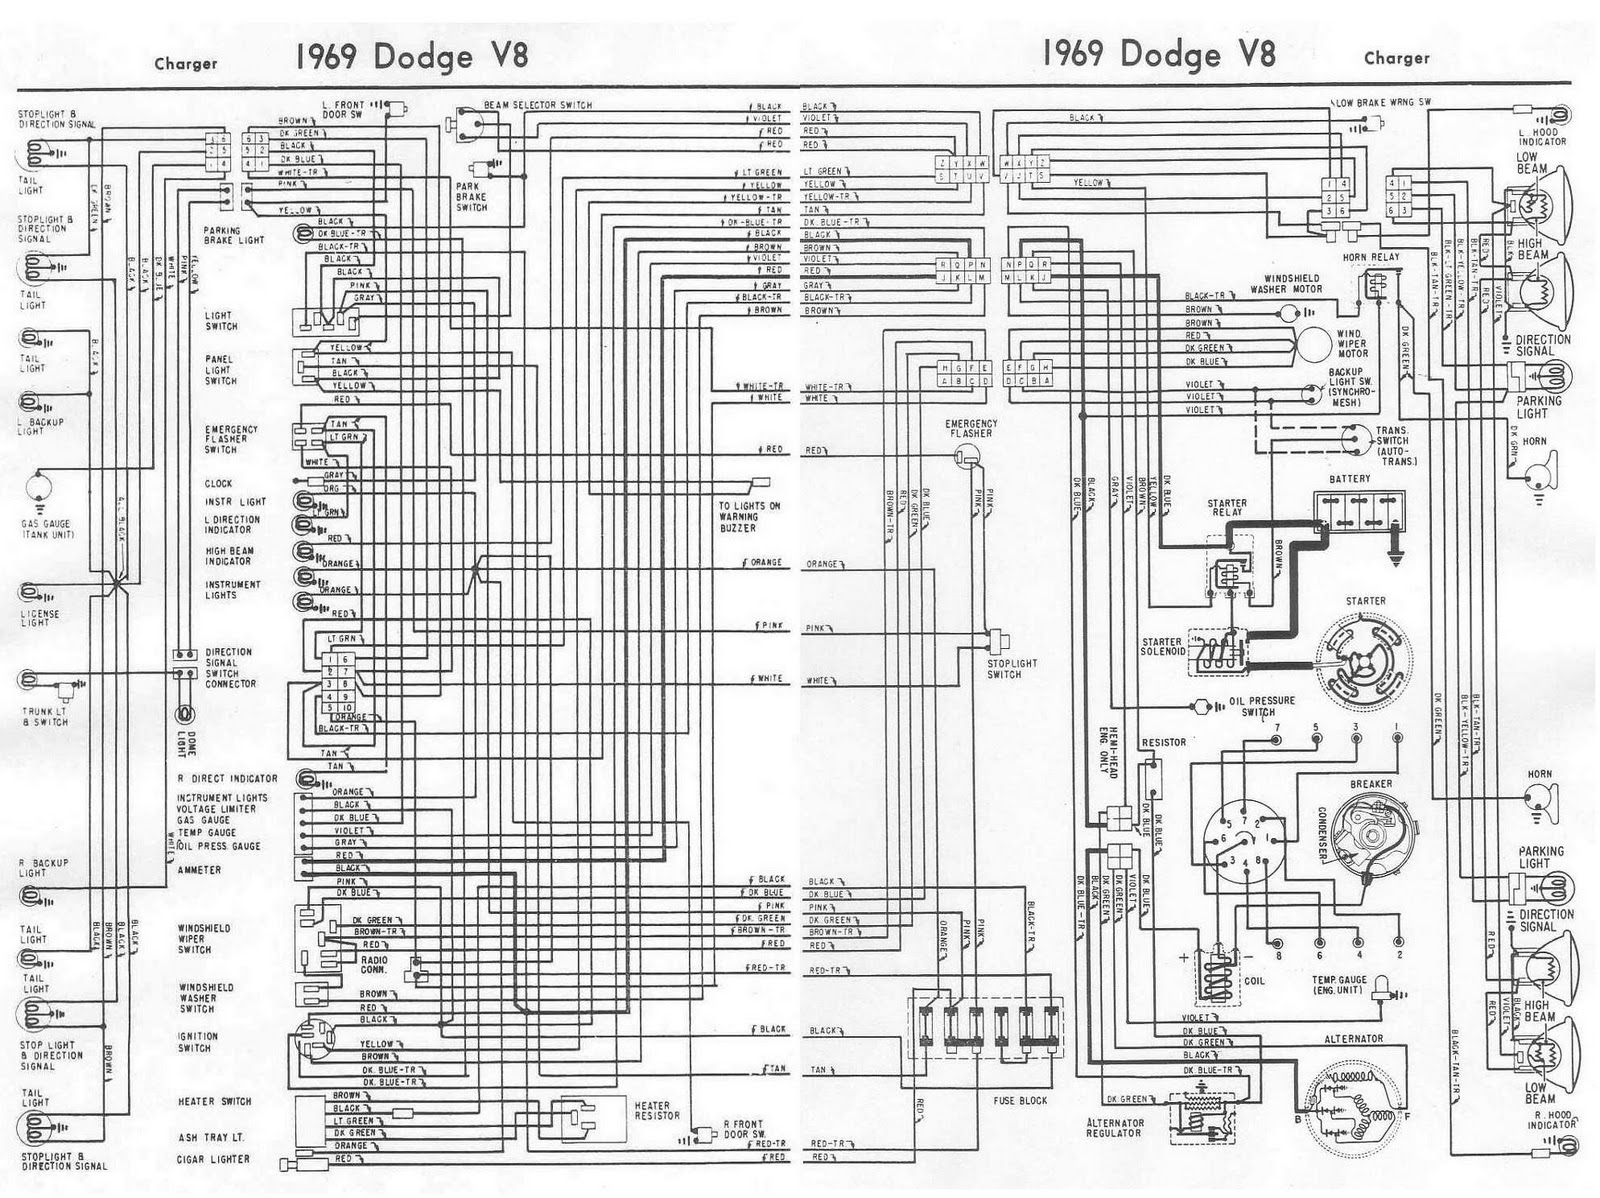 Diagram 65 Dodge Wiring Diagram Full Version Hd Quality Wiring Diagram Diagramshilde Dolcialchimie It